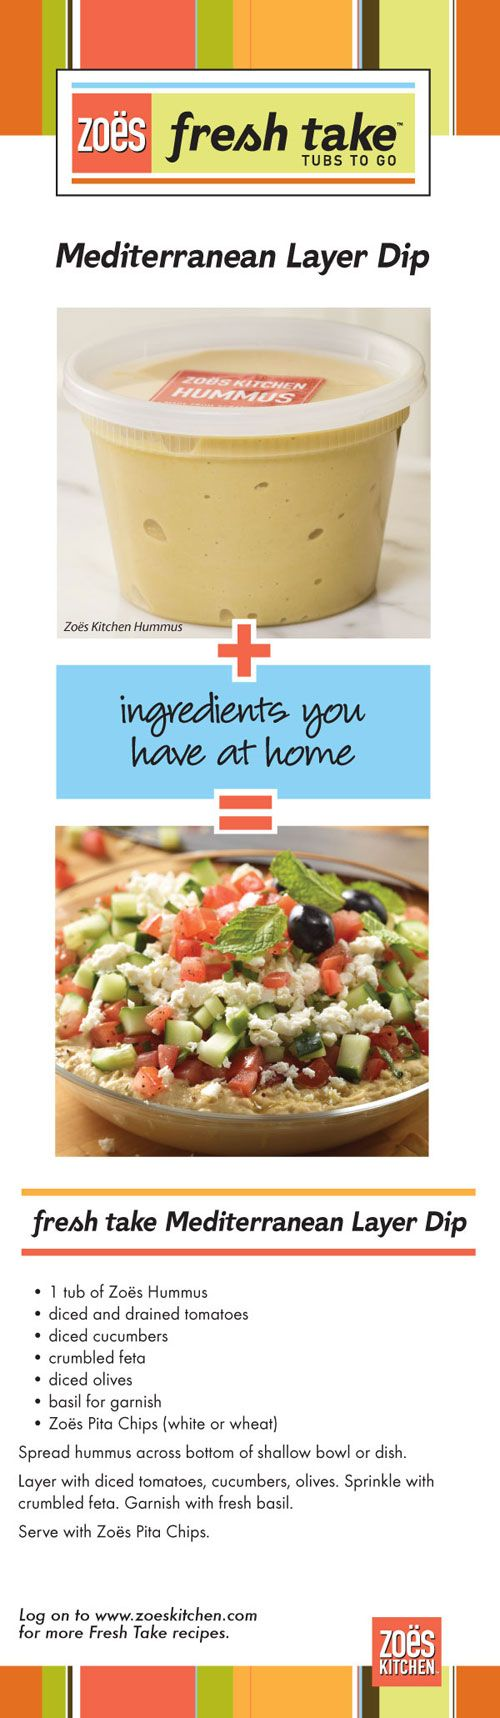 Zoes Kitchen Chicken Orzo Pomodorina 43 Best Zoe's Kitchen Copycat Recipes Images On Pinterest  Zoes